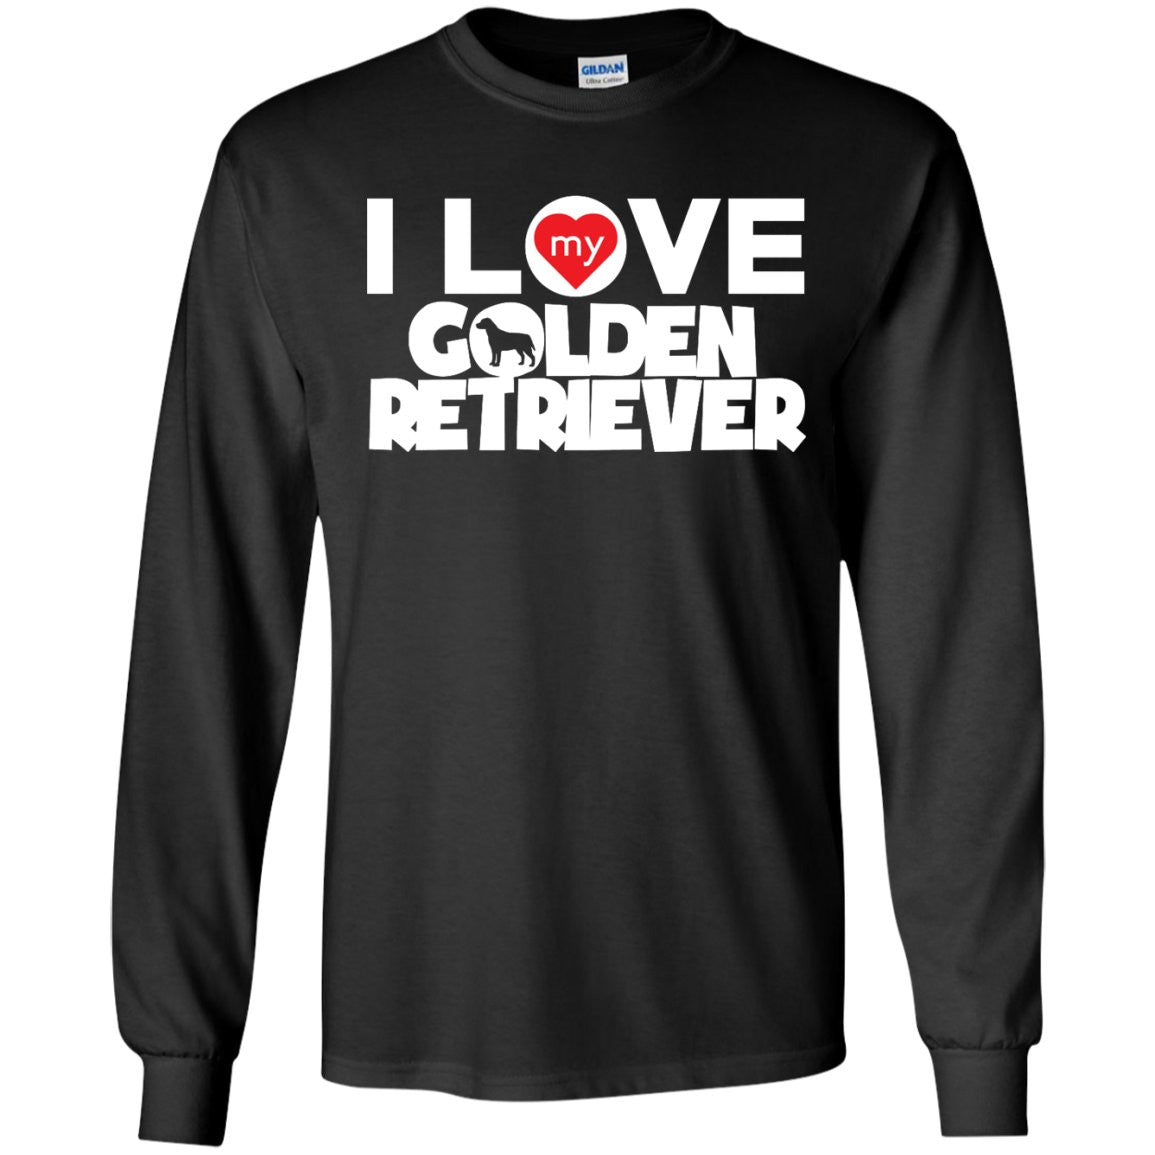 I Love My Golden Retriever - LS Ultra Cotton Tshirt